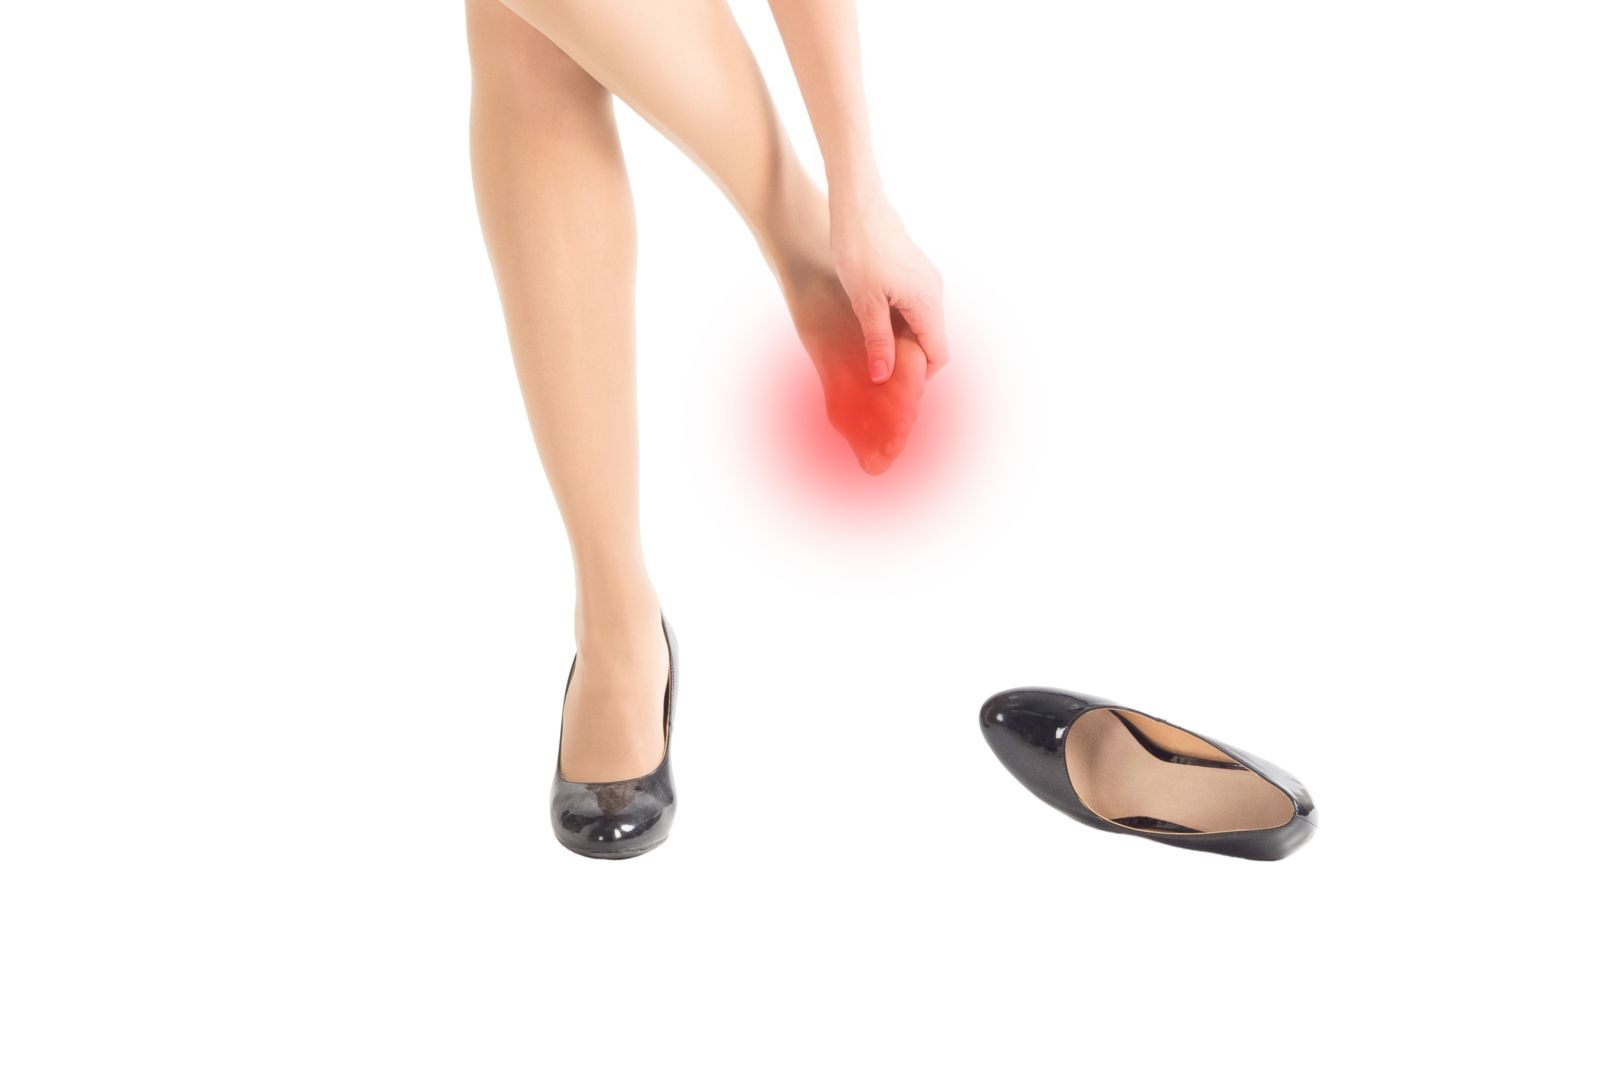 Houston podiatrist treats foot pain caused by high heels